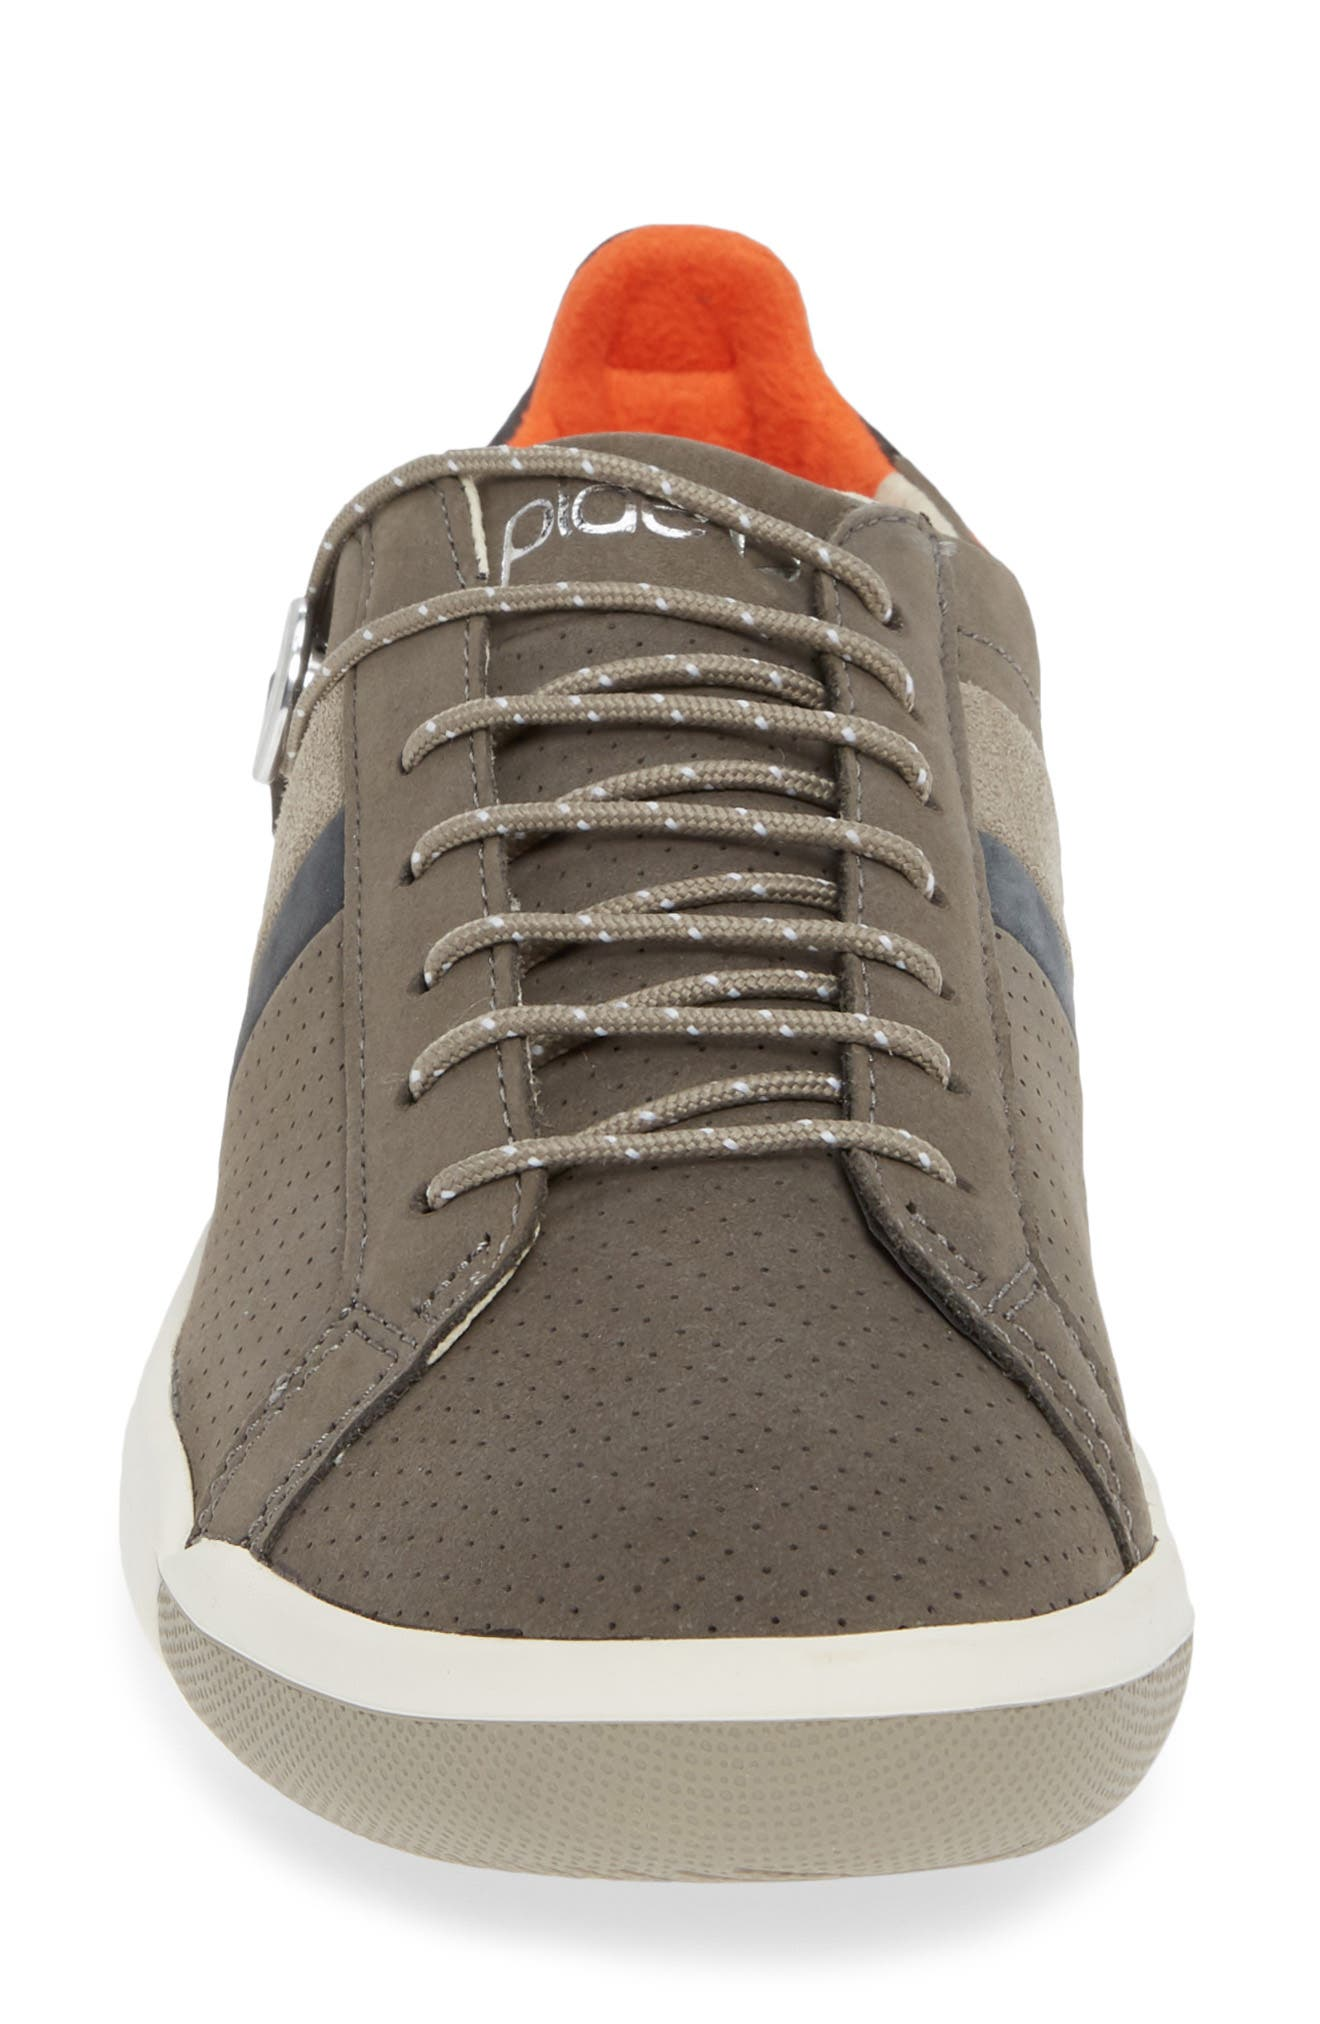 Mulberry Sneaker,                             Alternate thumbnail 4, color,                             GREY NUBUCK LEATHER